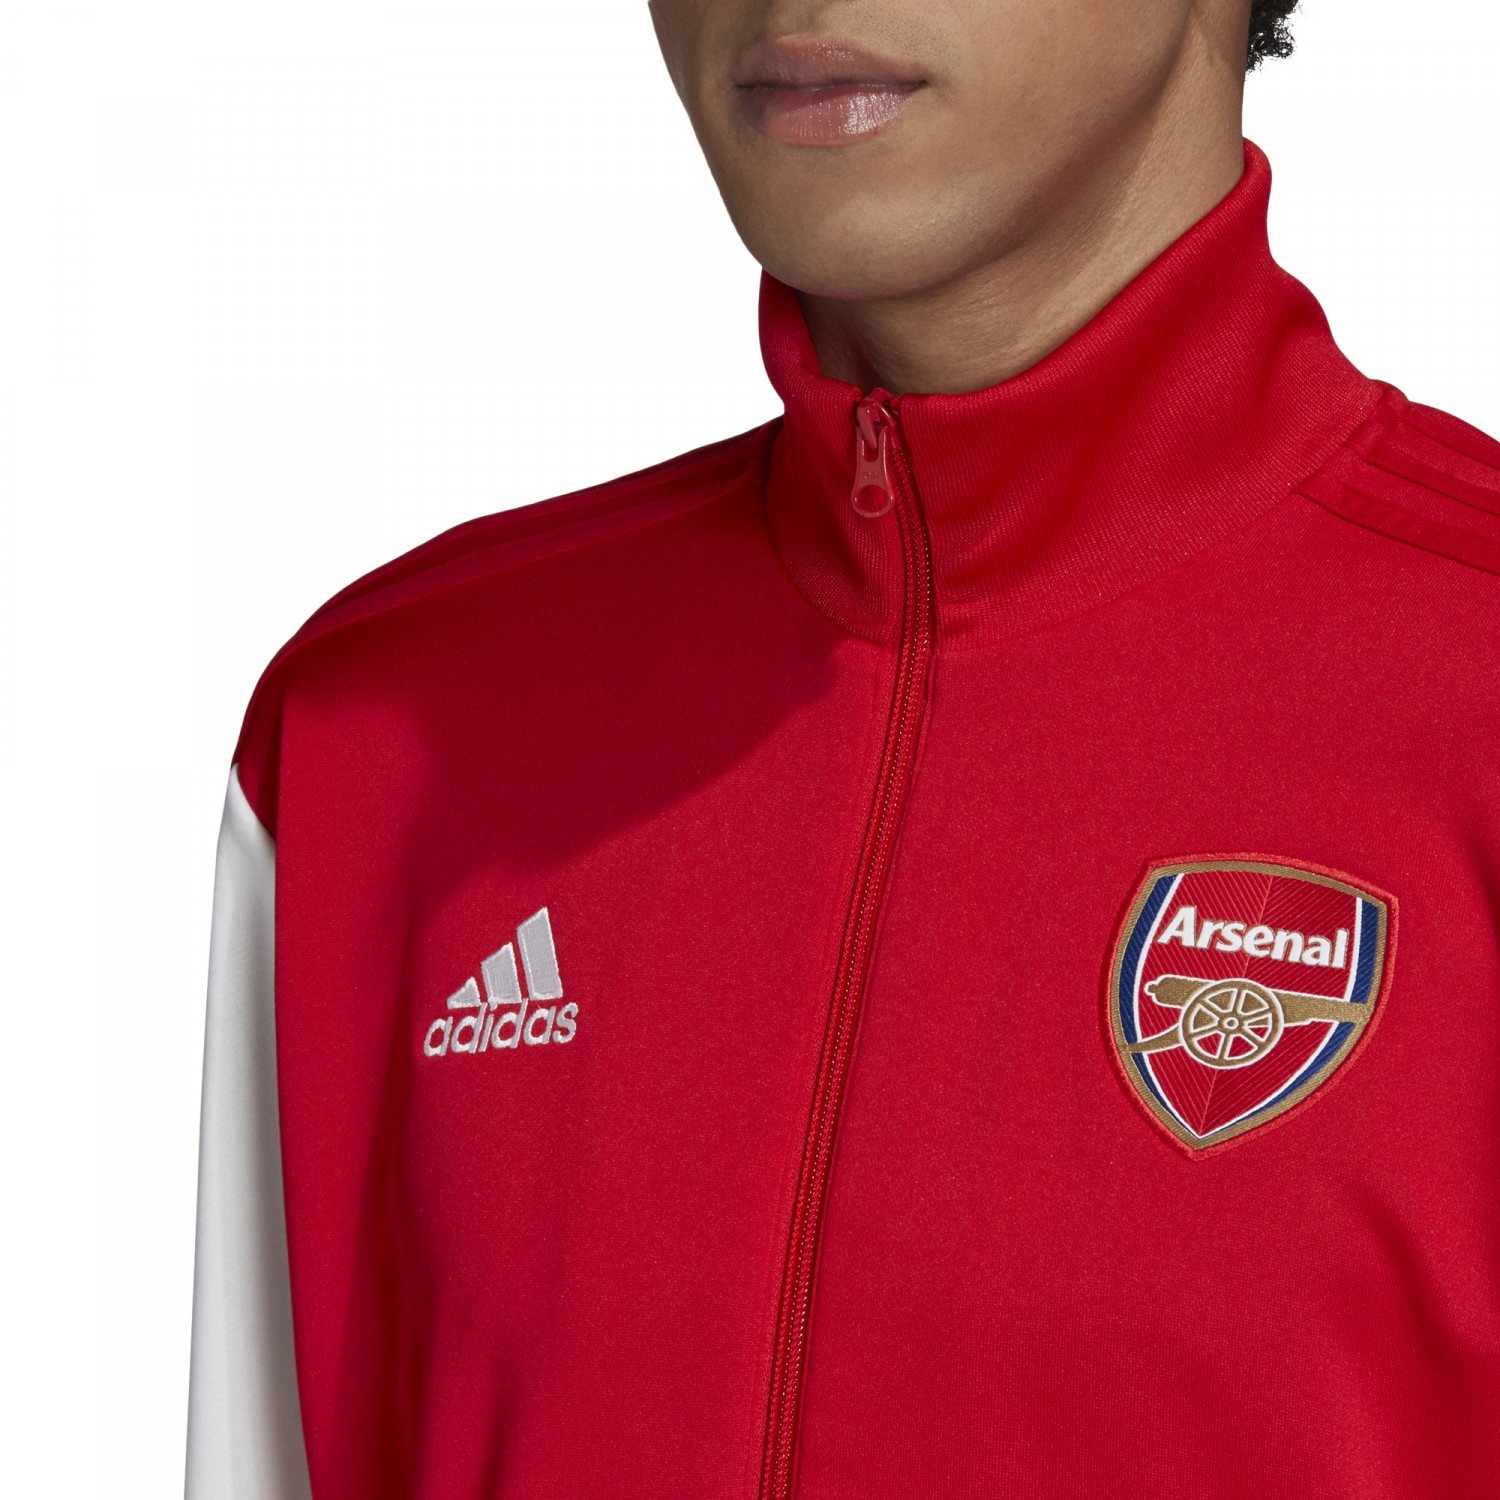 Veste survêtement Arsenal 3S rouge blanc 202021